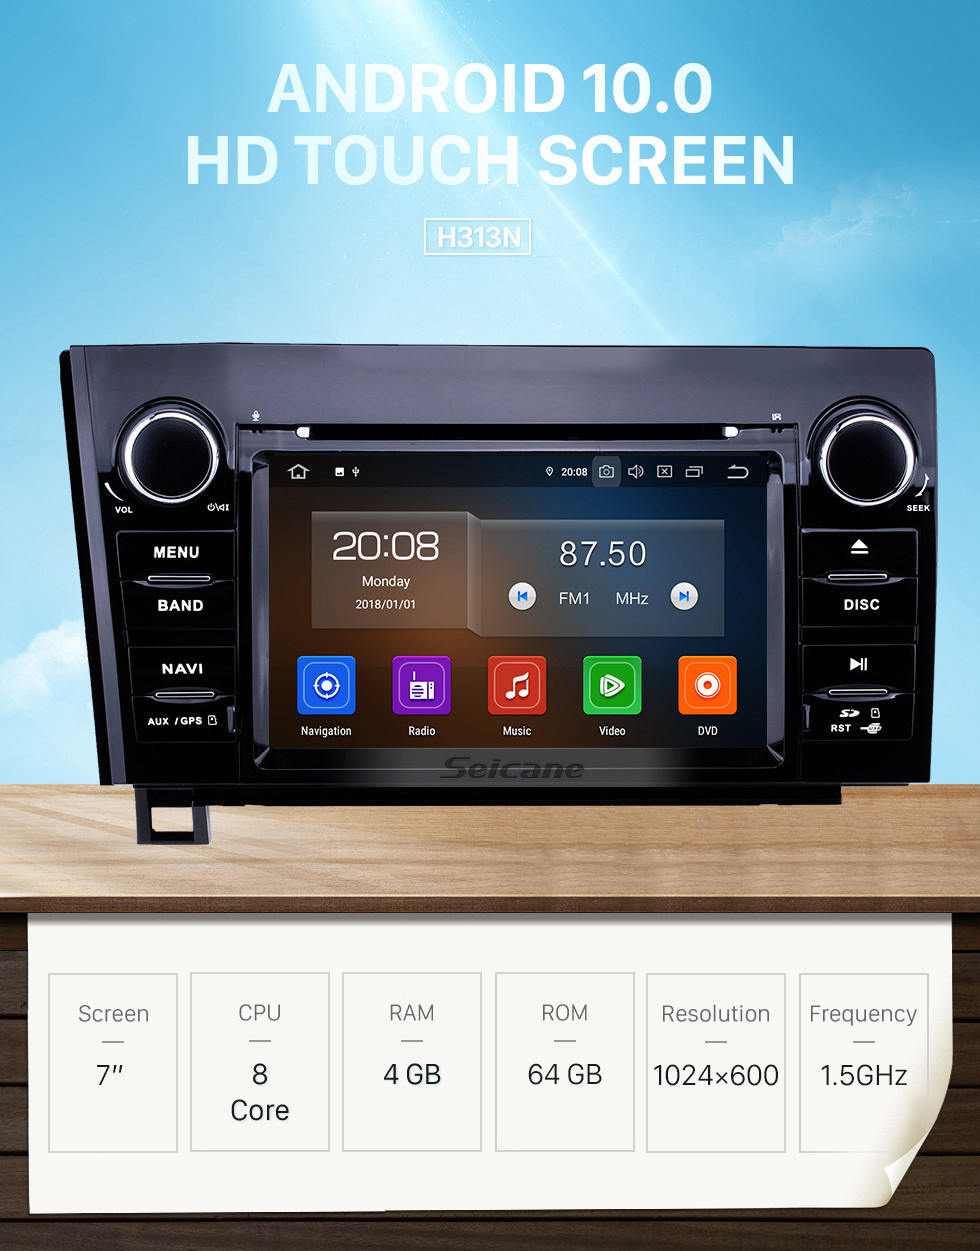 Seicane 7 inch Android 10.0 HD Touchscreen GPS Navigation Radio for 2008-2015 Toyota Sequoia/2006-2013 Tundra with Carplay Bluetooth WIFI USB support Backup camera